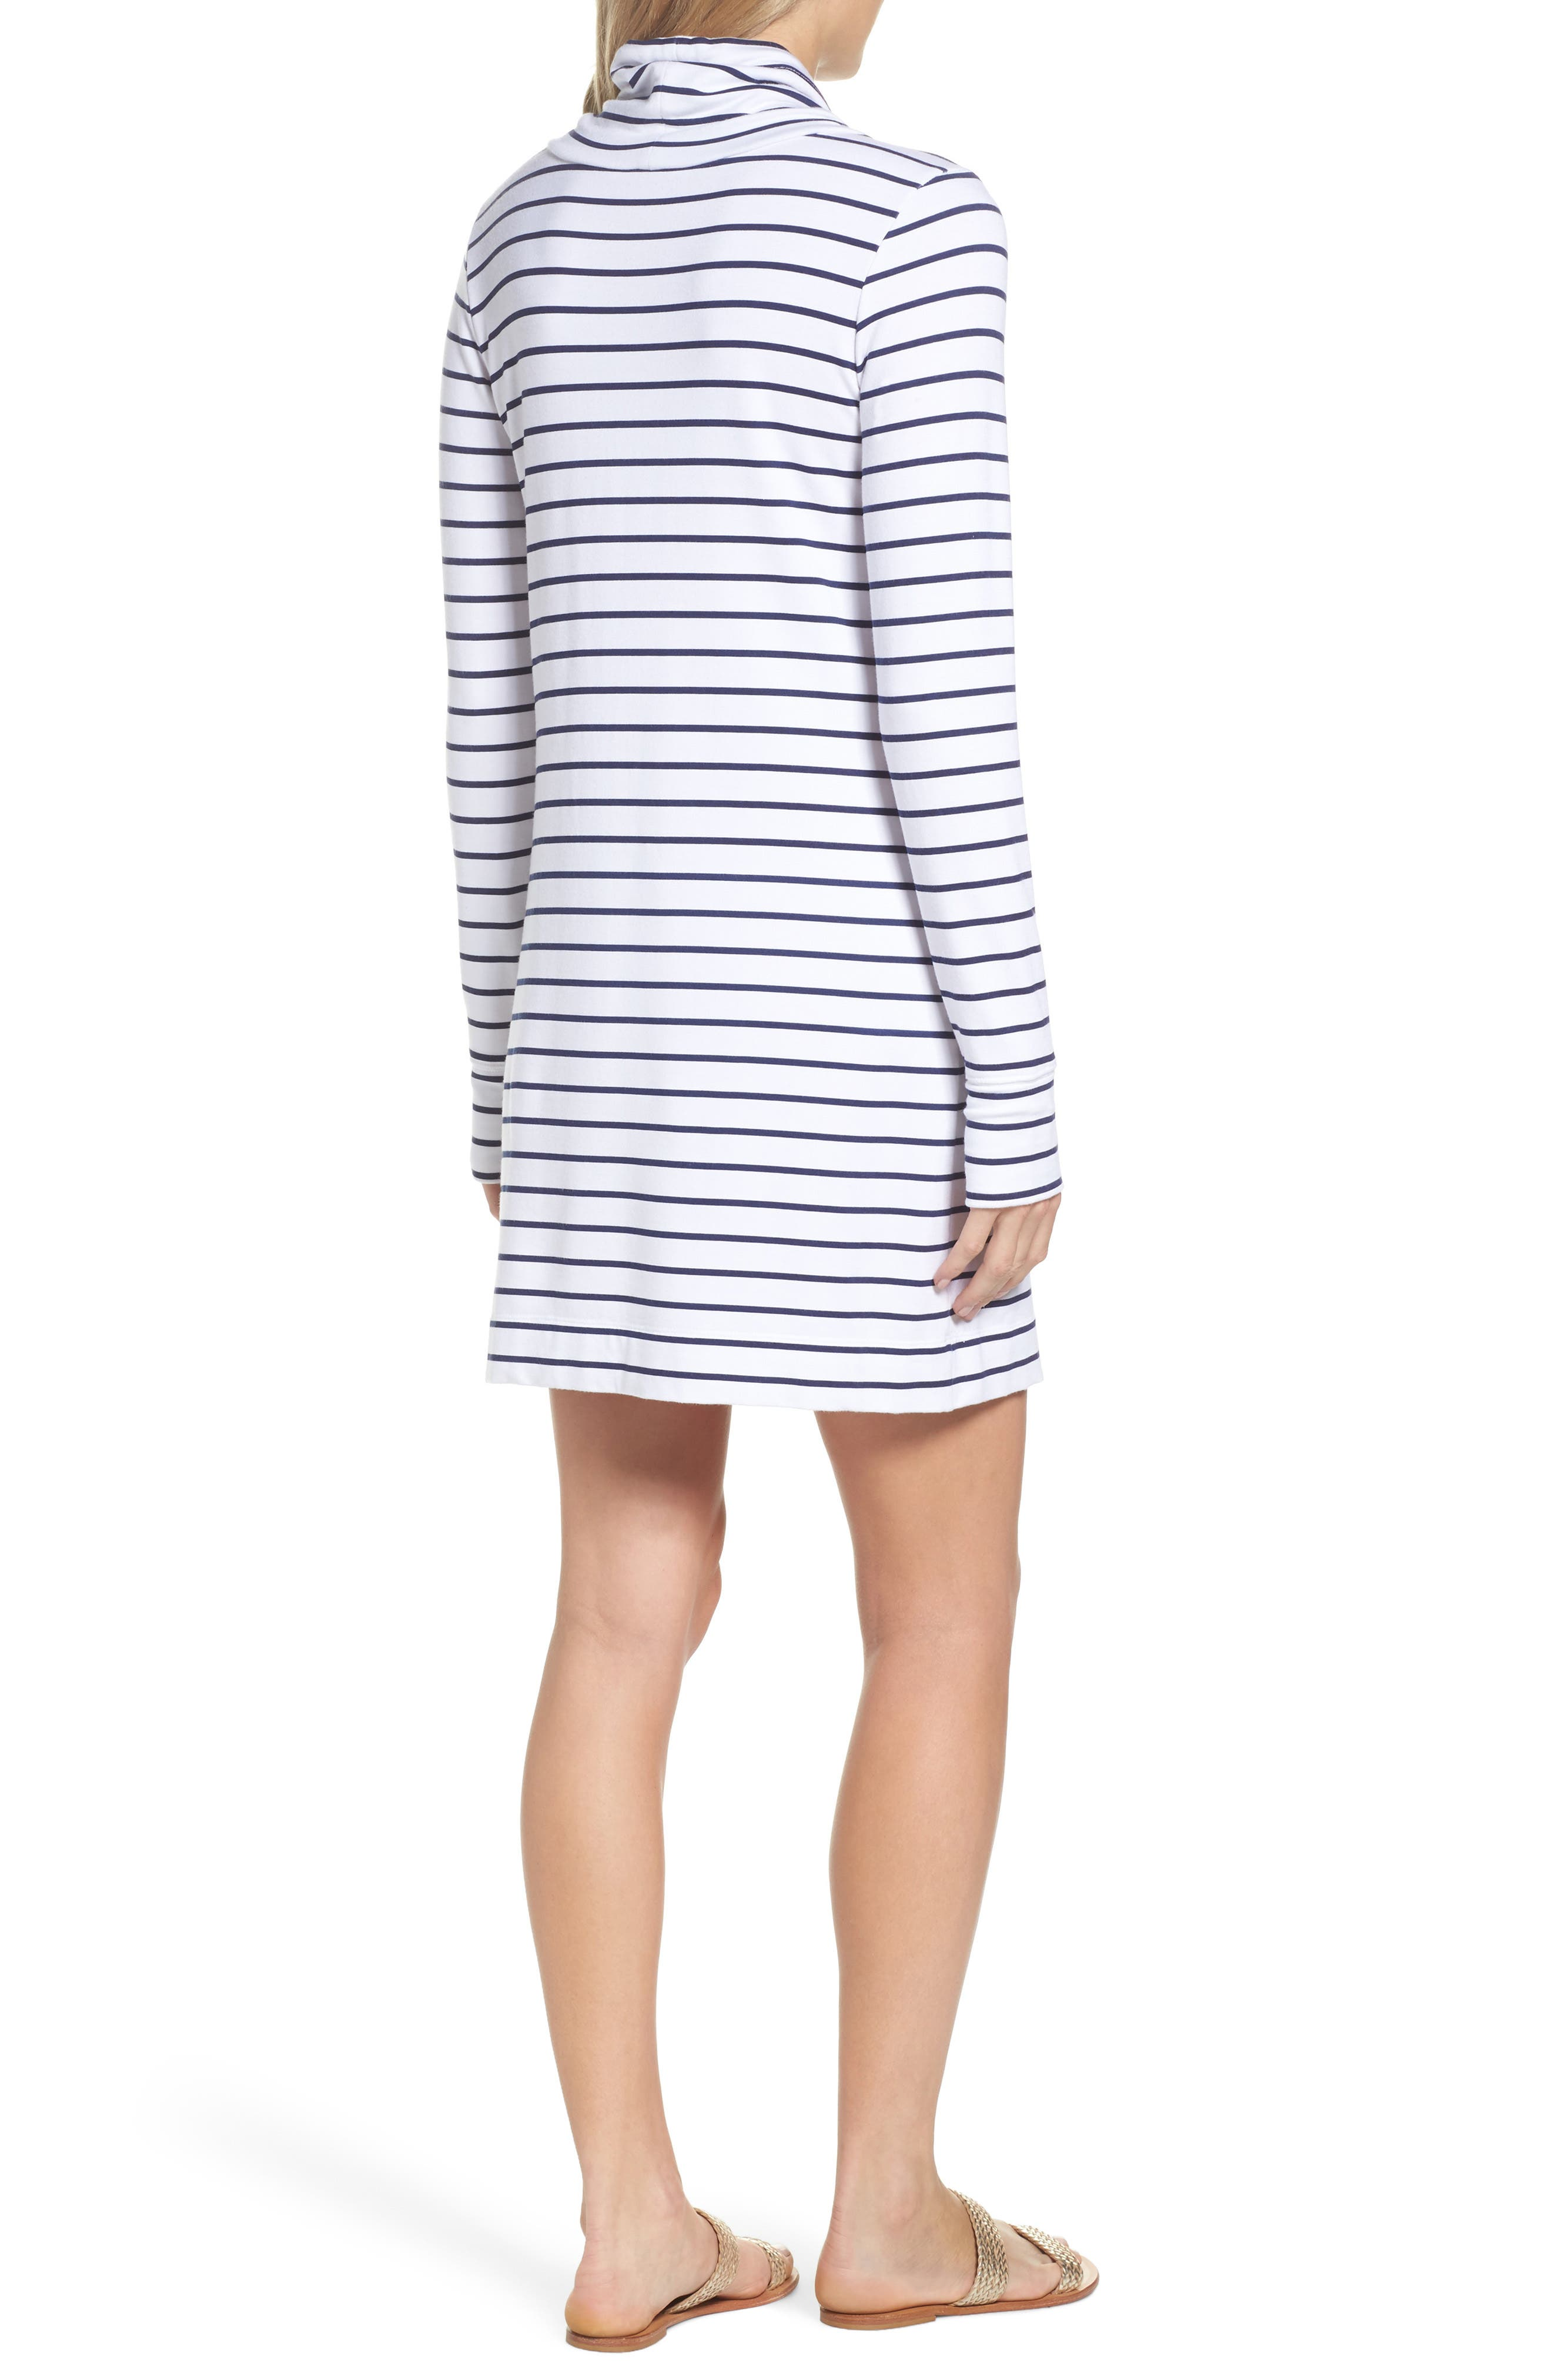 Hilary UPF 50+ Dress,                             Alternate thumbnail 2, color,                             Bright Navy Mystic Stripe